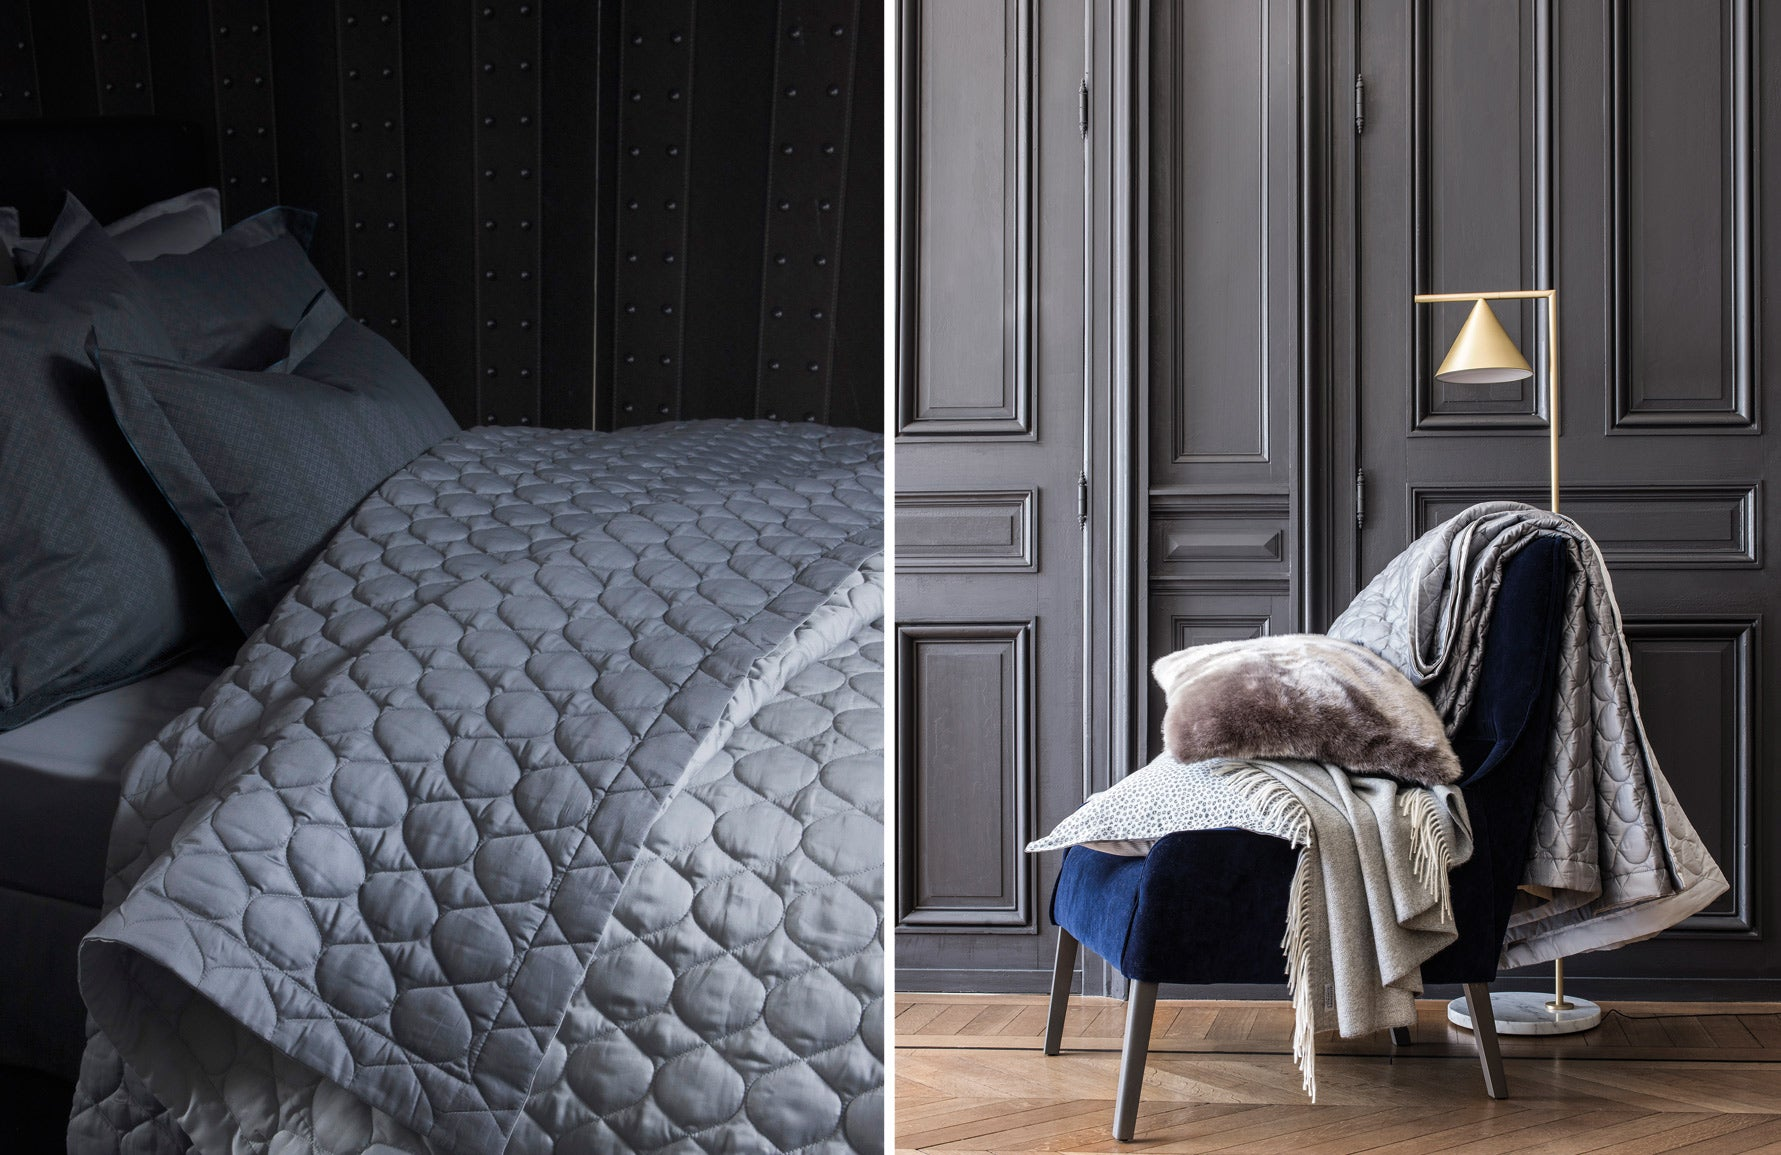 Luxury Bedding Guide How To Care For Bedding Luxdeco